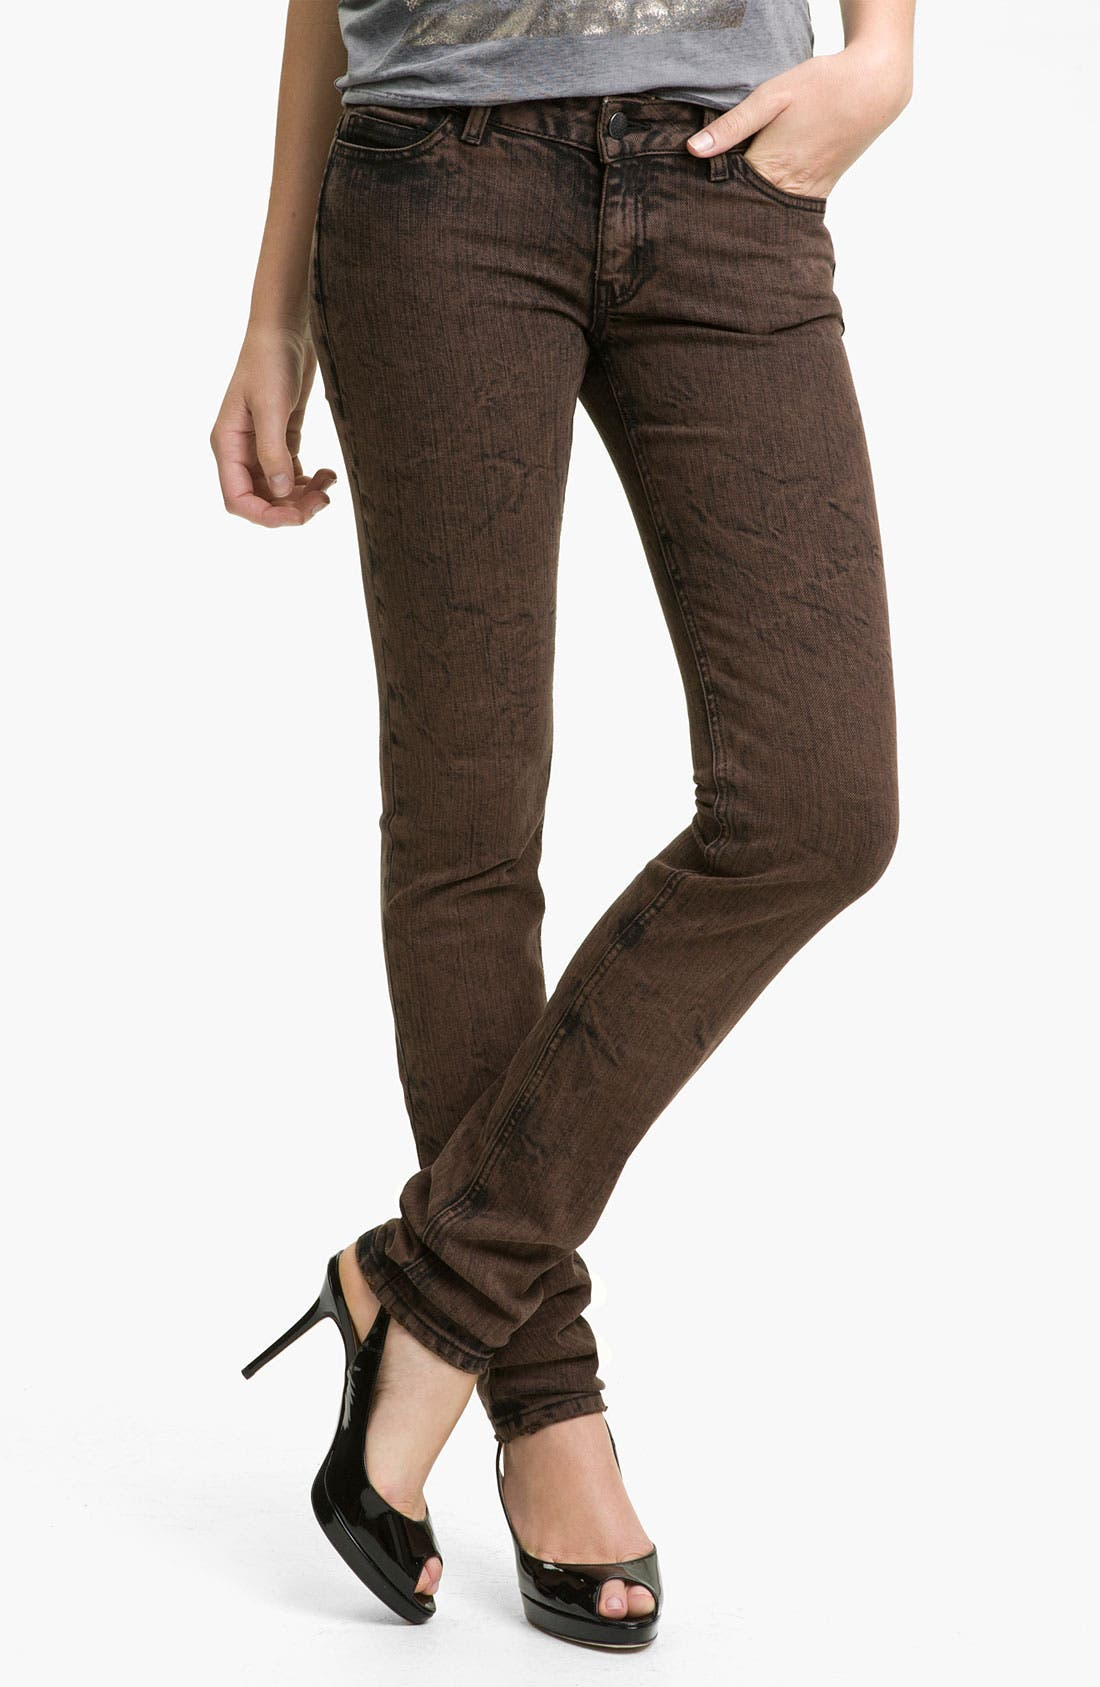 Alternate Image 1 Selected - Kelly Wearstler 'Mason' Slim Stretch Jeans